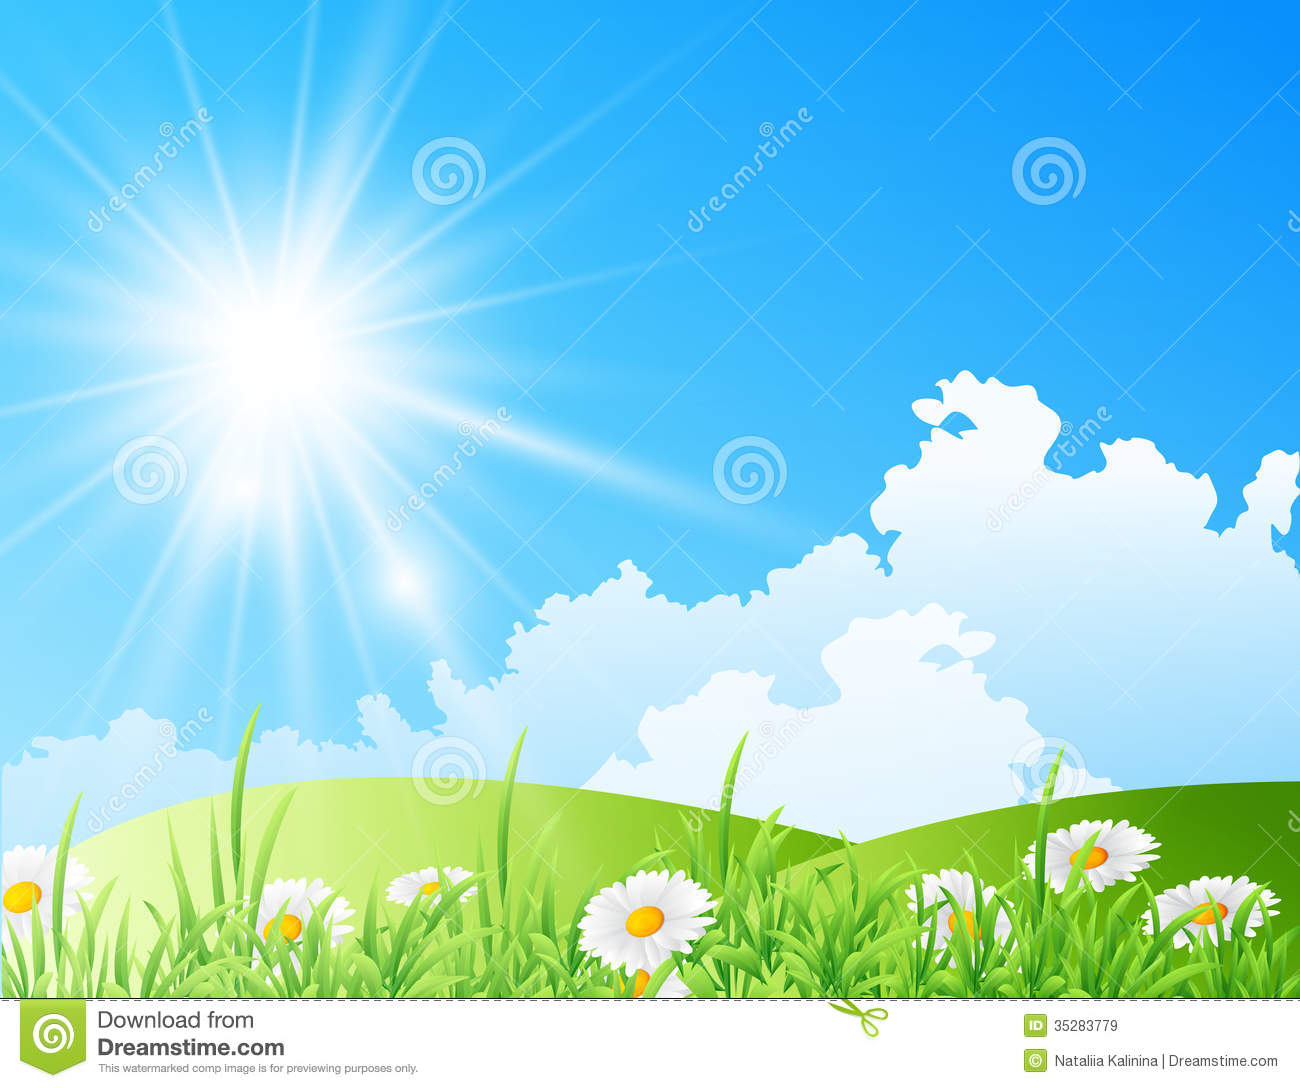 Bright Sunny Day Clipart Field Of Daisies With Bright